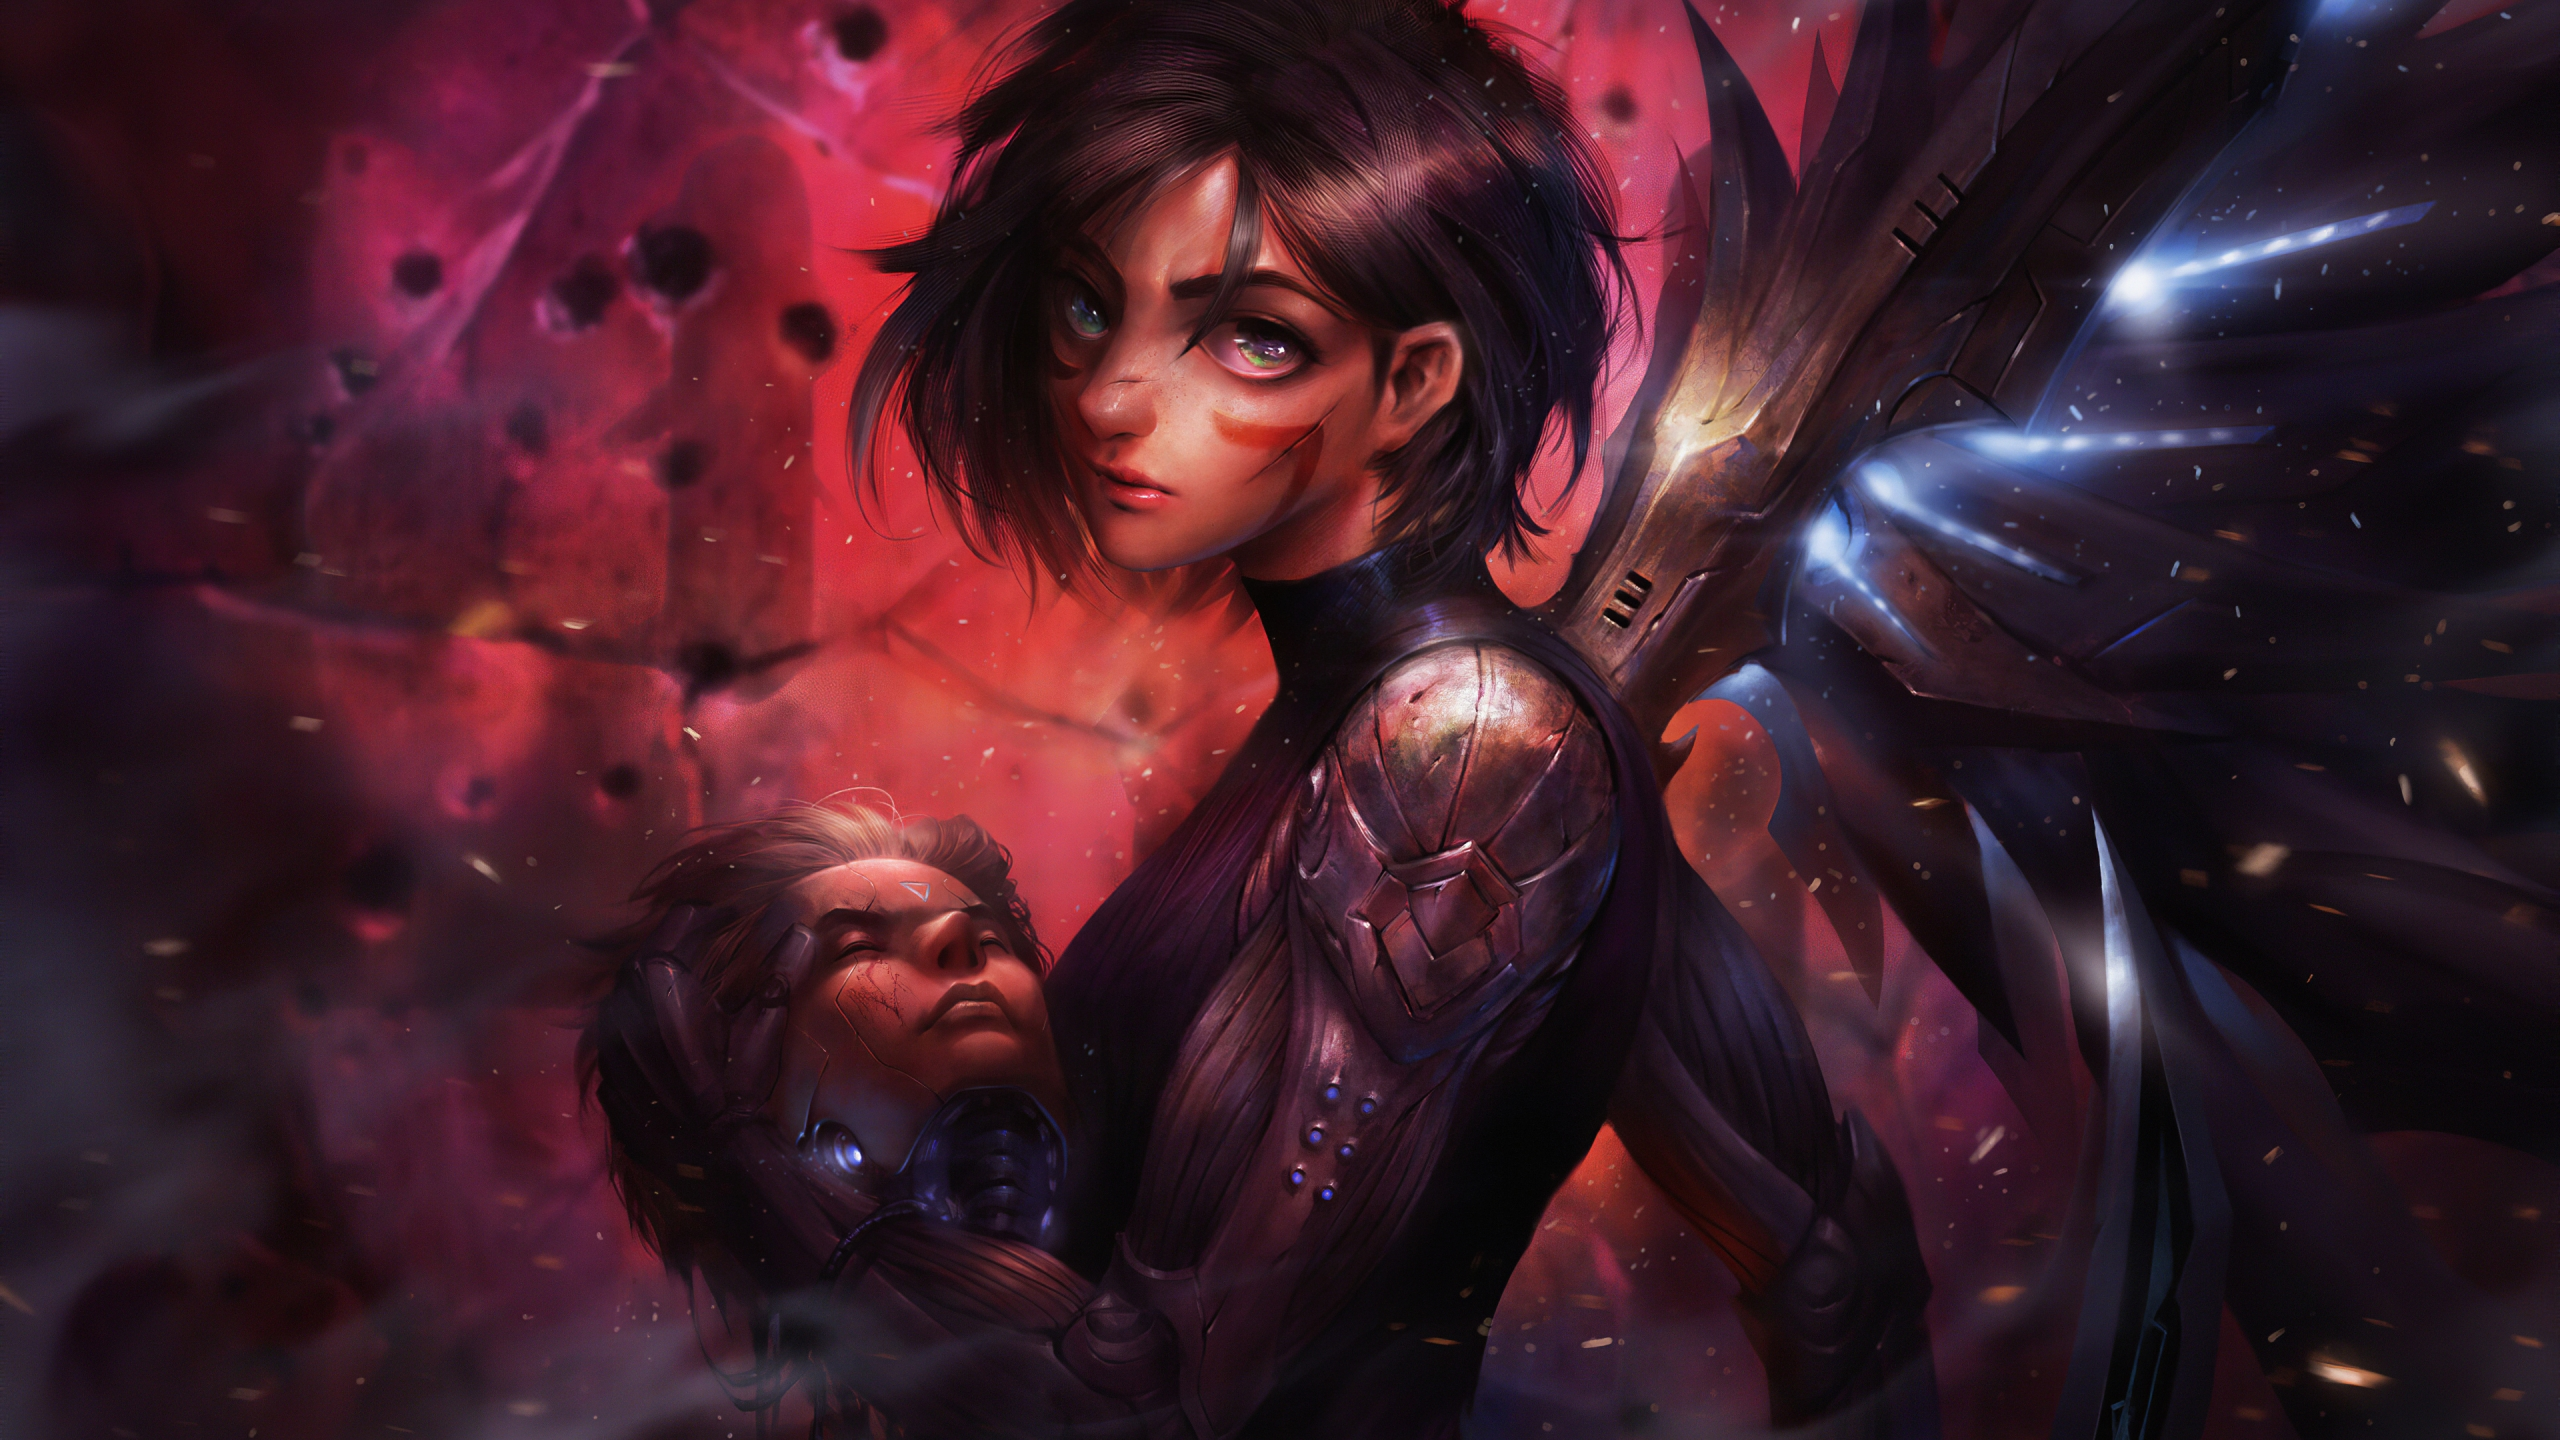 Alita Battle Angel Fanart Wallpaper 4k Ultra Hd Id 4845